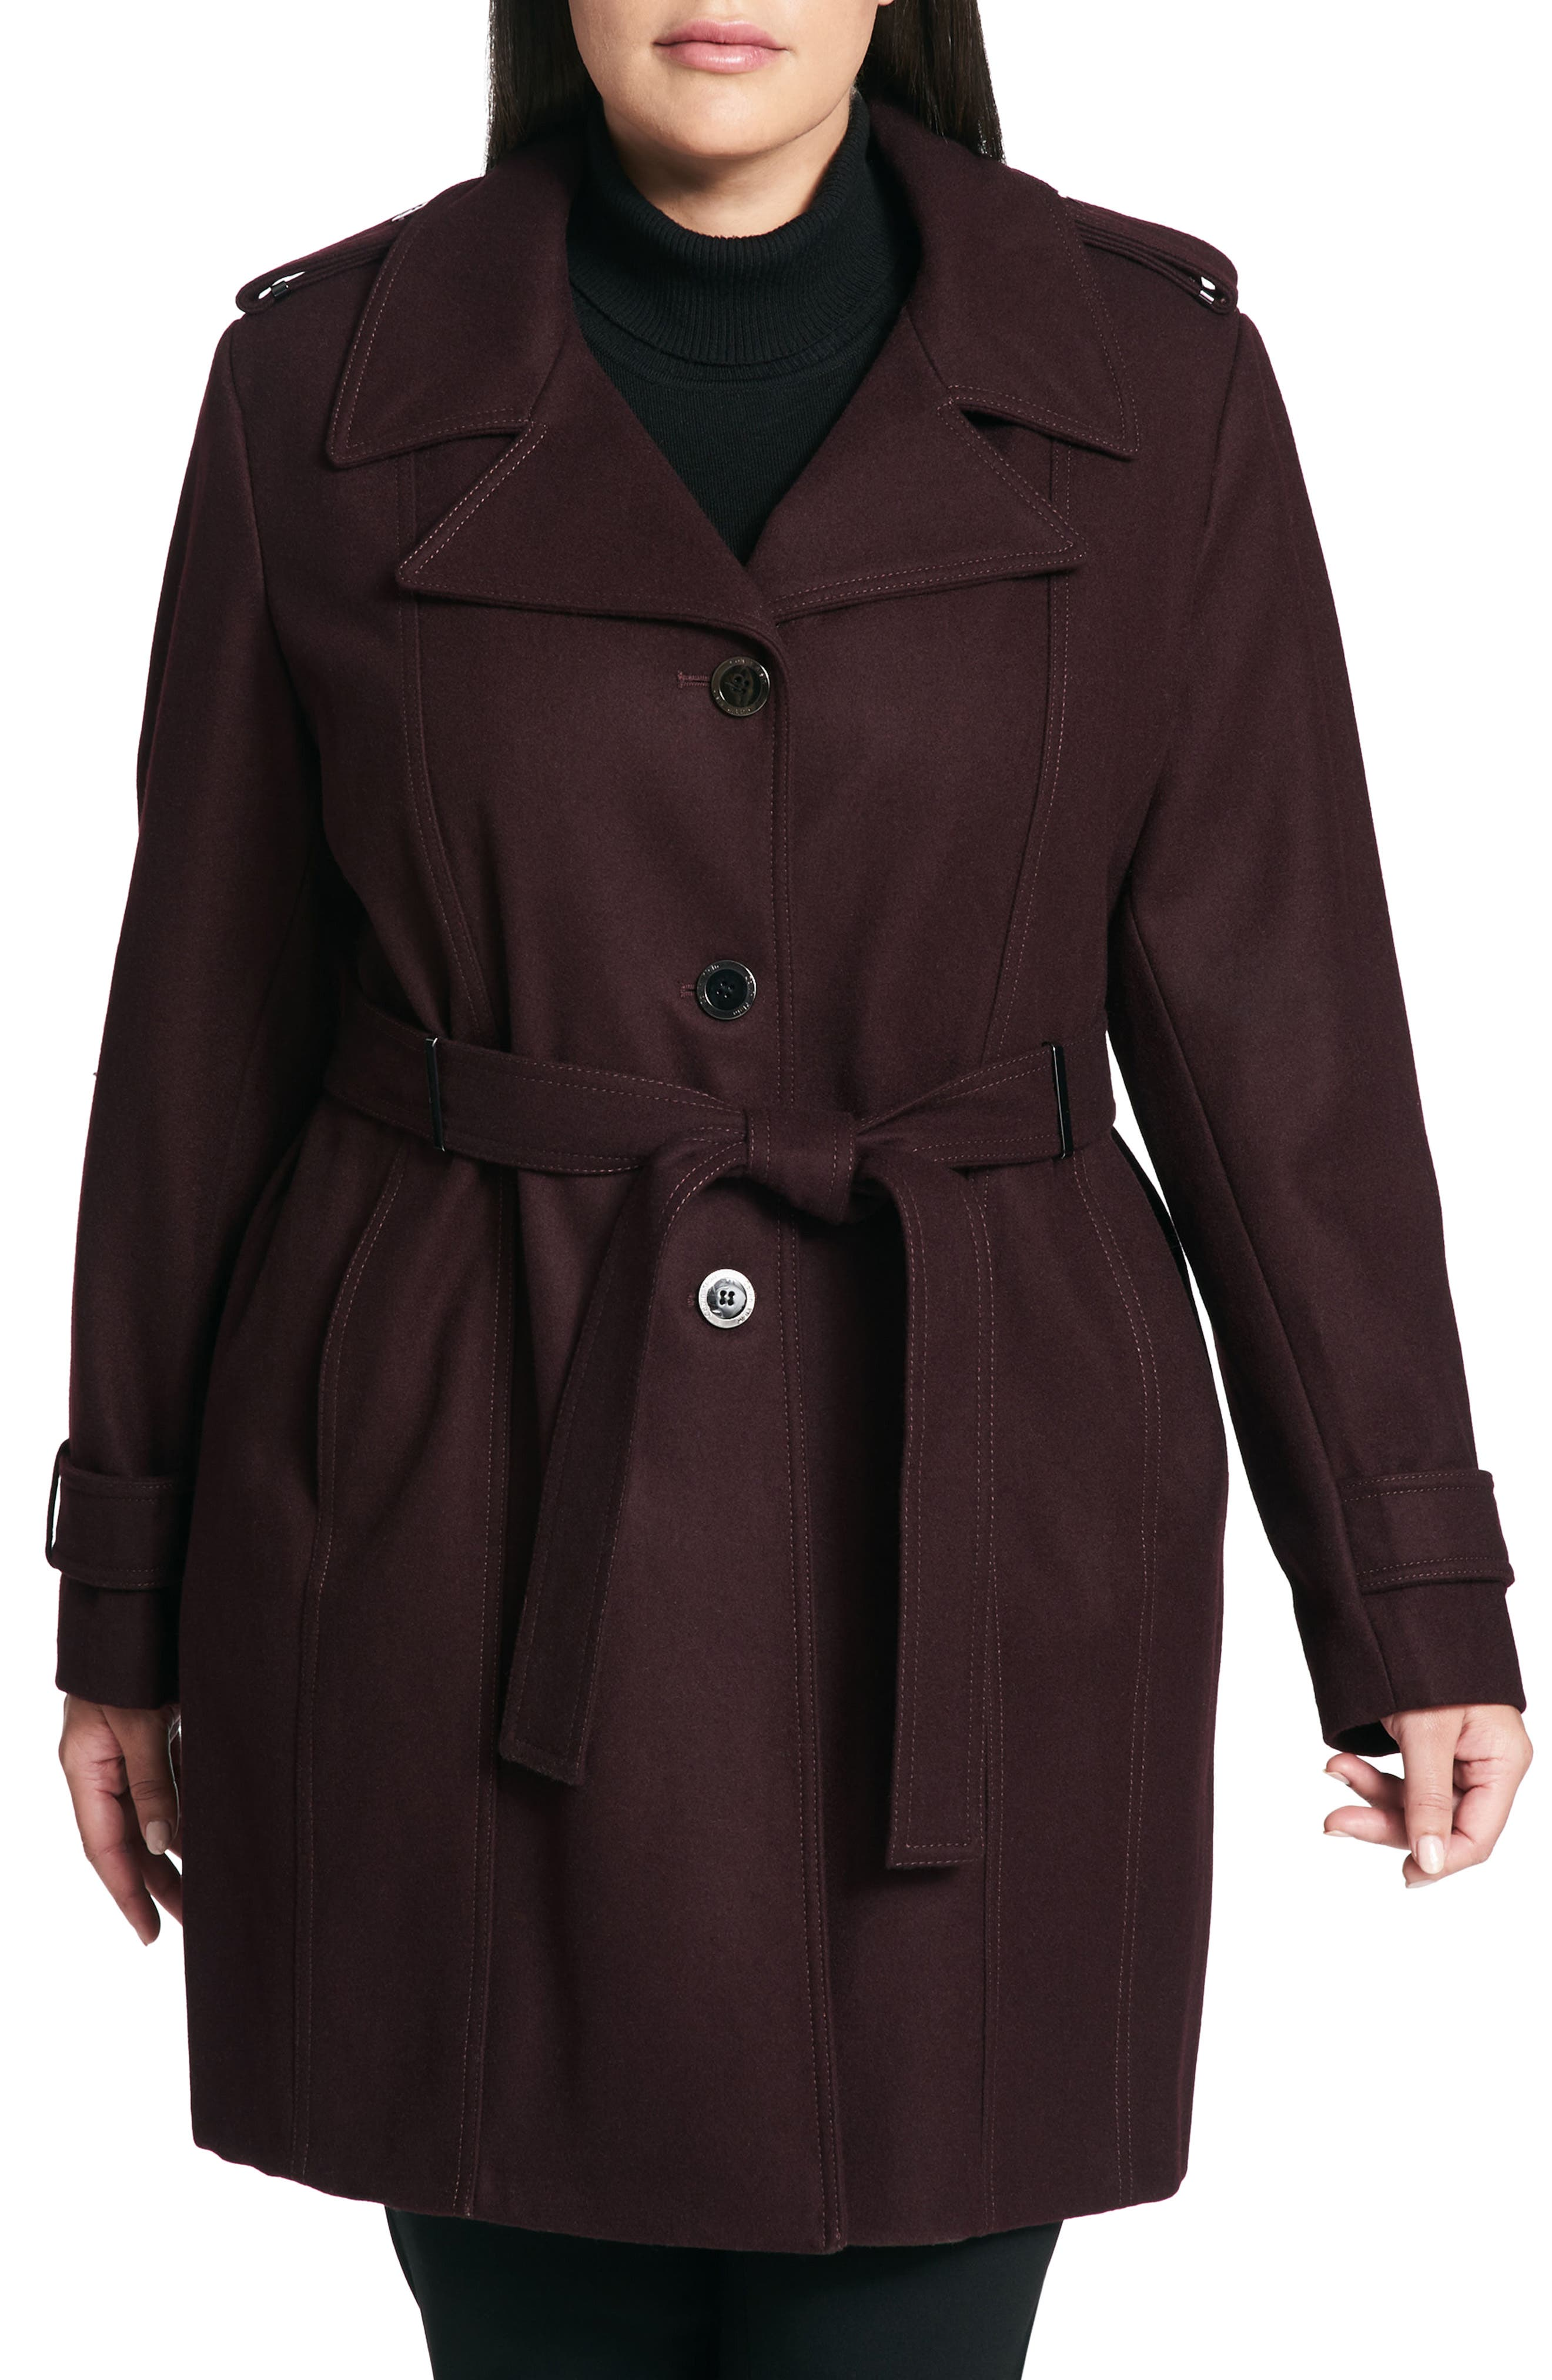 Single Breasted Wool Blend Trench Coat,                             Main thumbnail 1, color,                             930